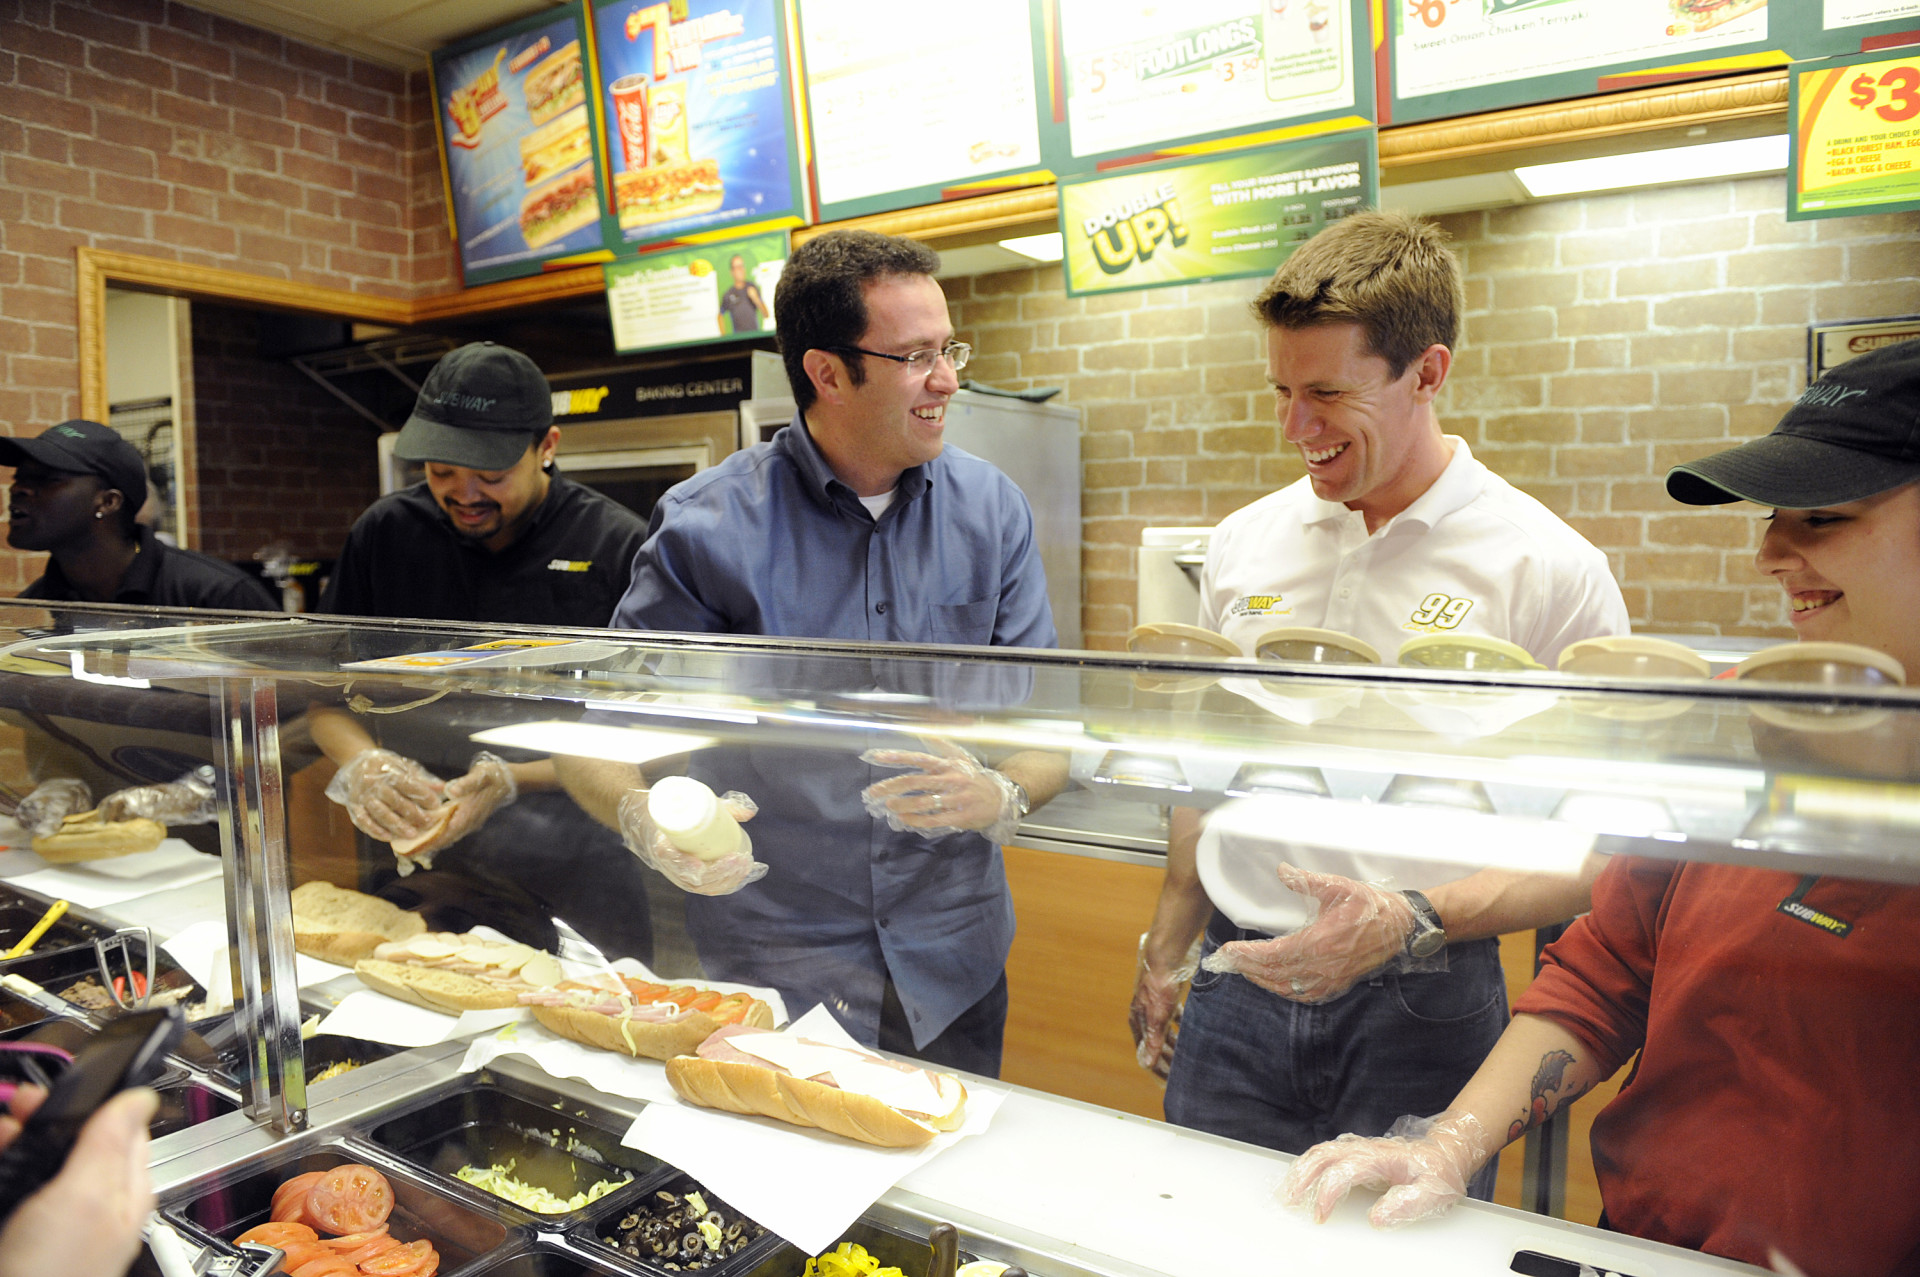 For 15 years, Jared Fogle has been the famous face of Subway. Here, Fogle (left) visits a Subway shop in Daytona Beach, Fla., with NASCAR driver Carl Edwards in 2012.